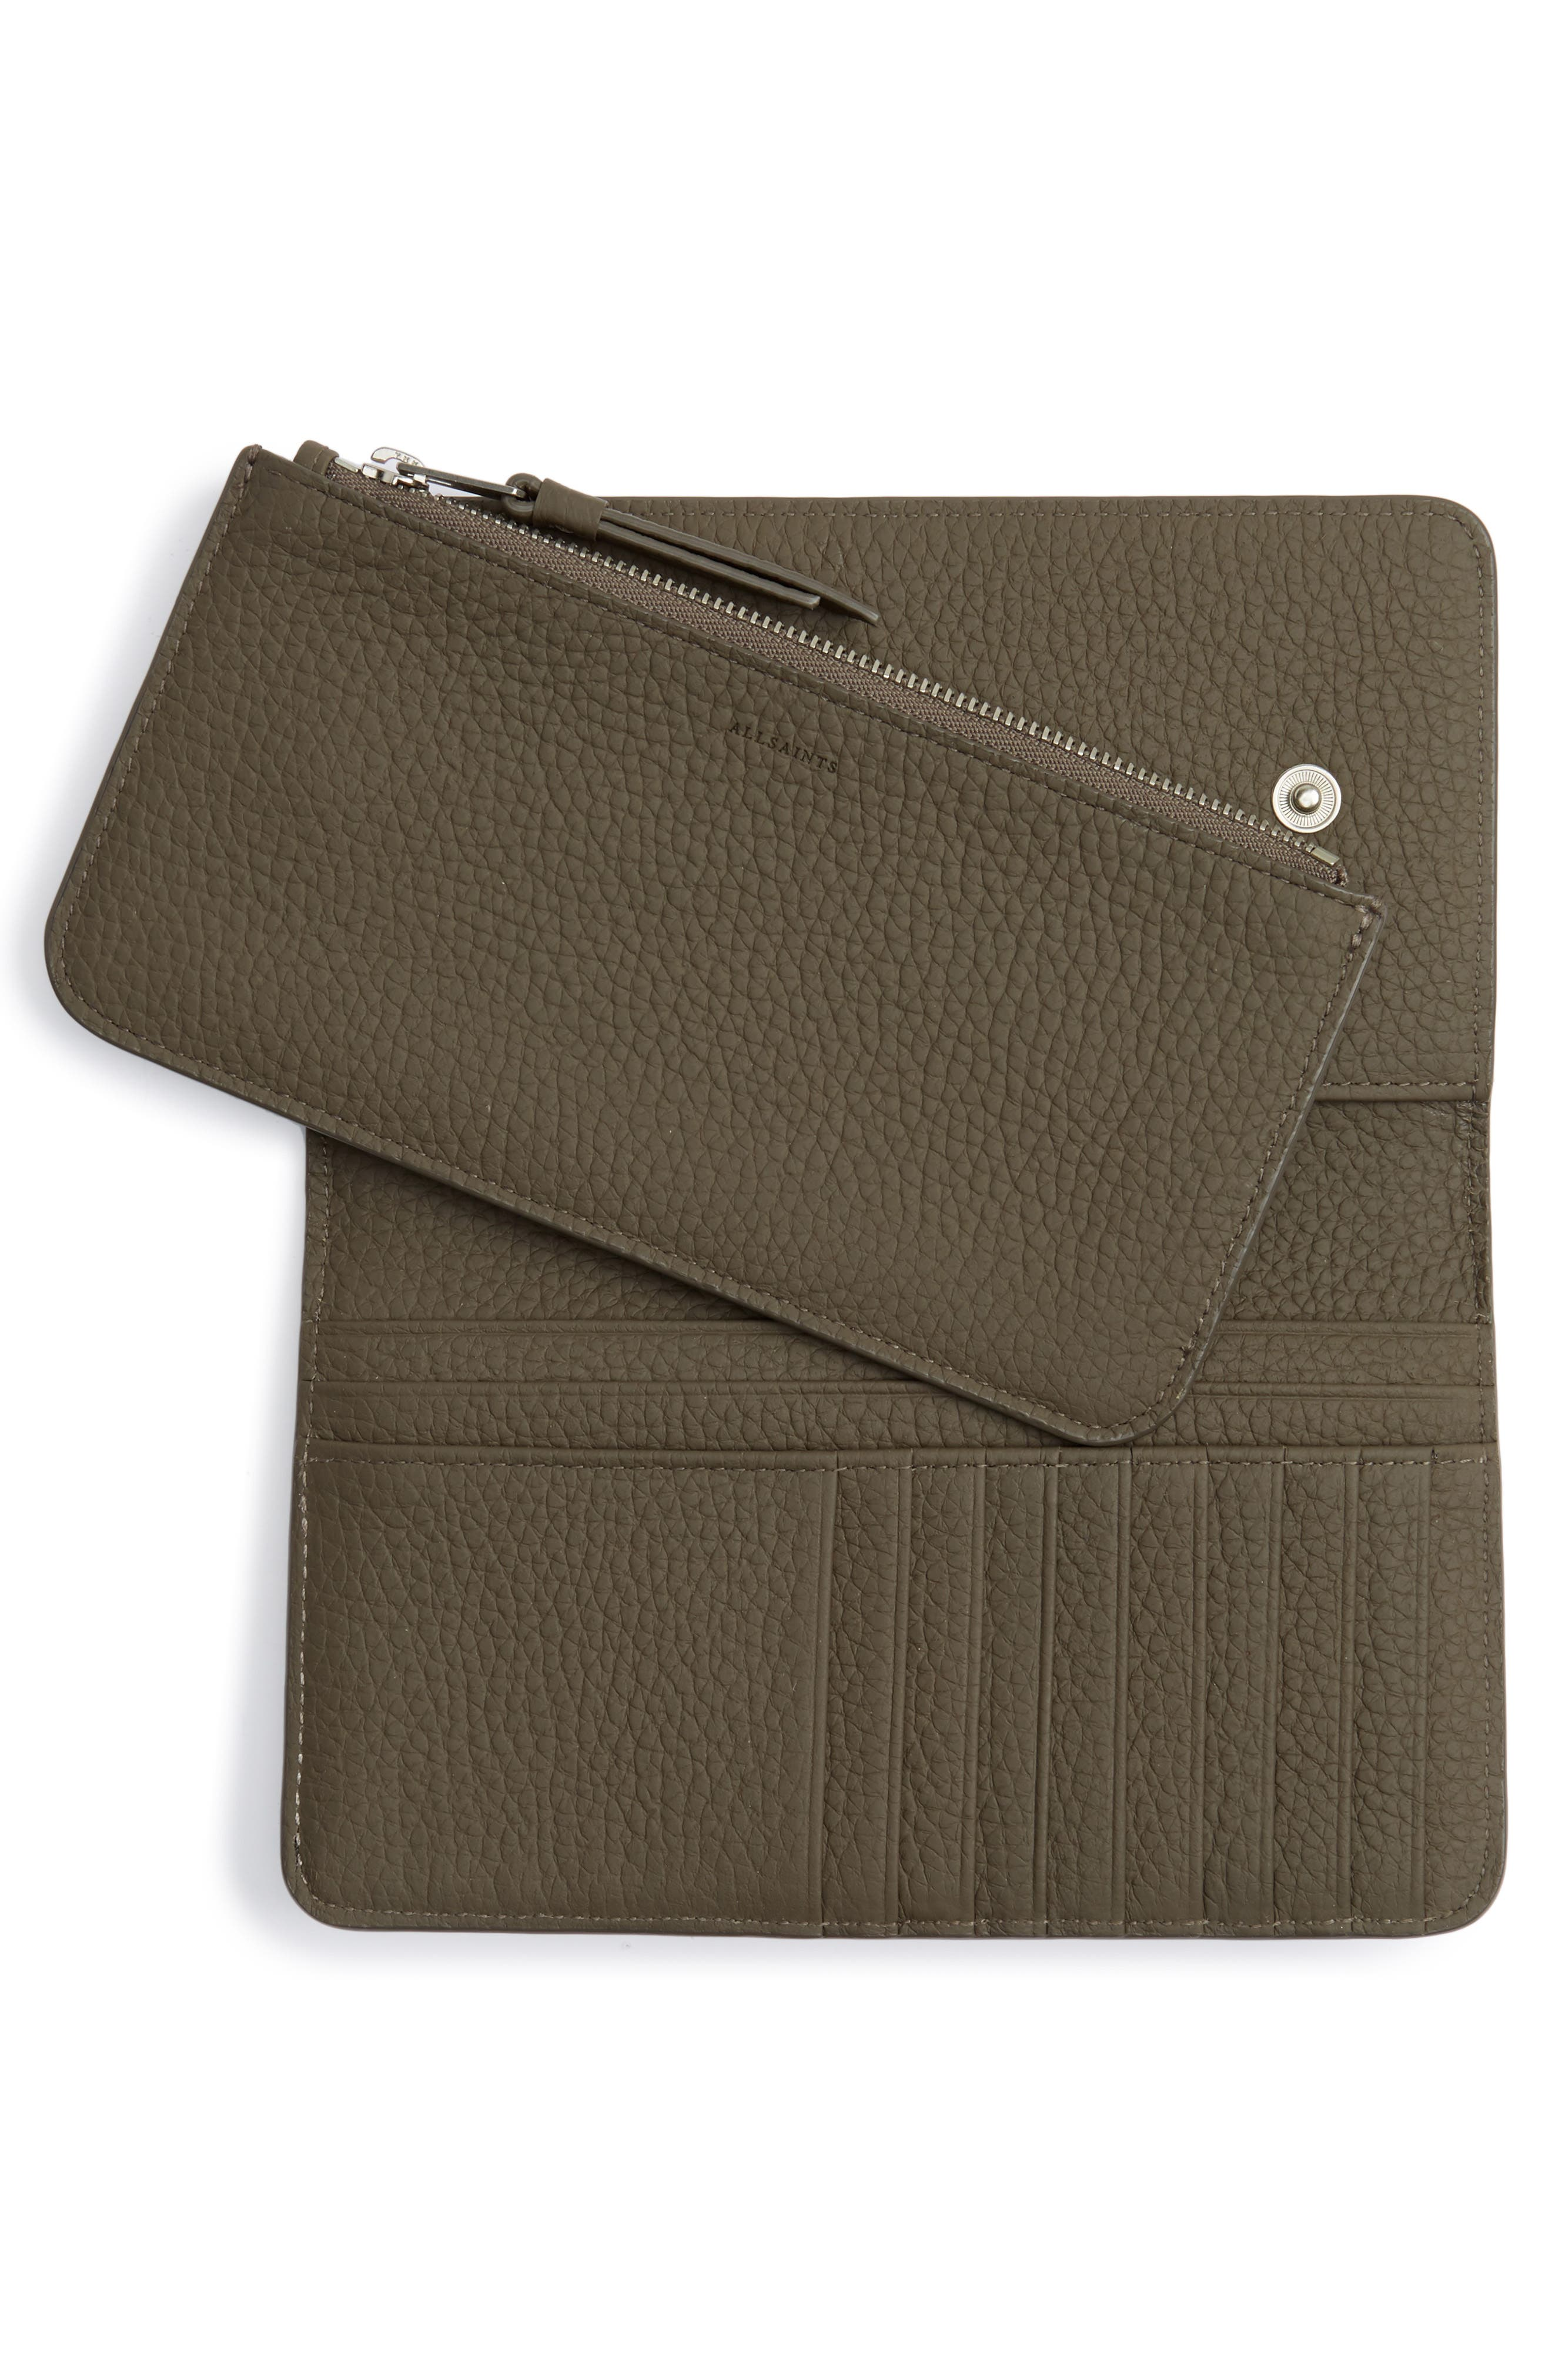 Ray Leather Wallet,                             Alternate thumbnail 2, color,                             Mink Grey